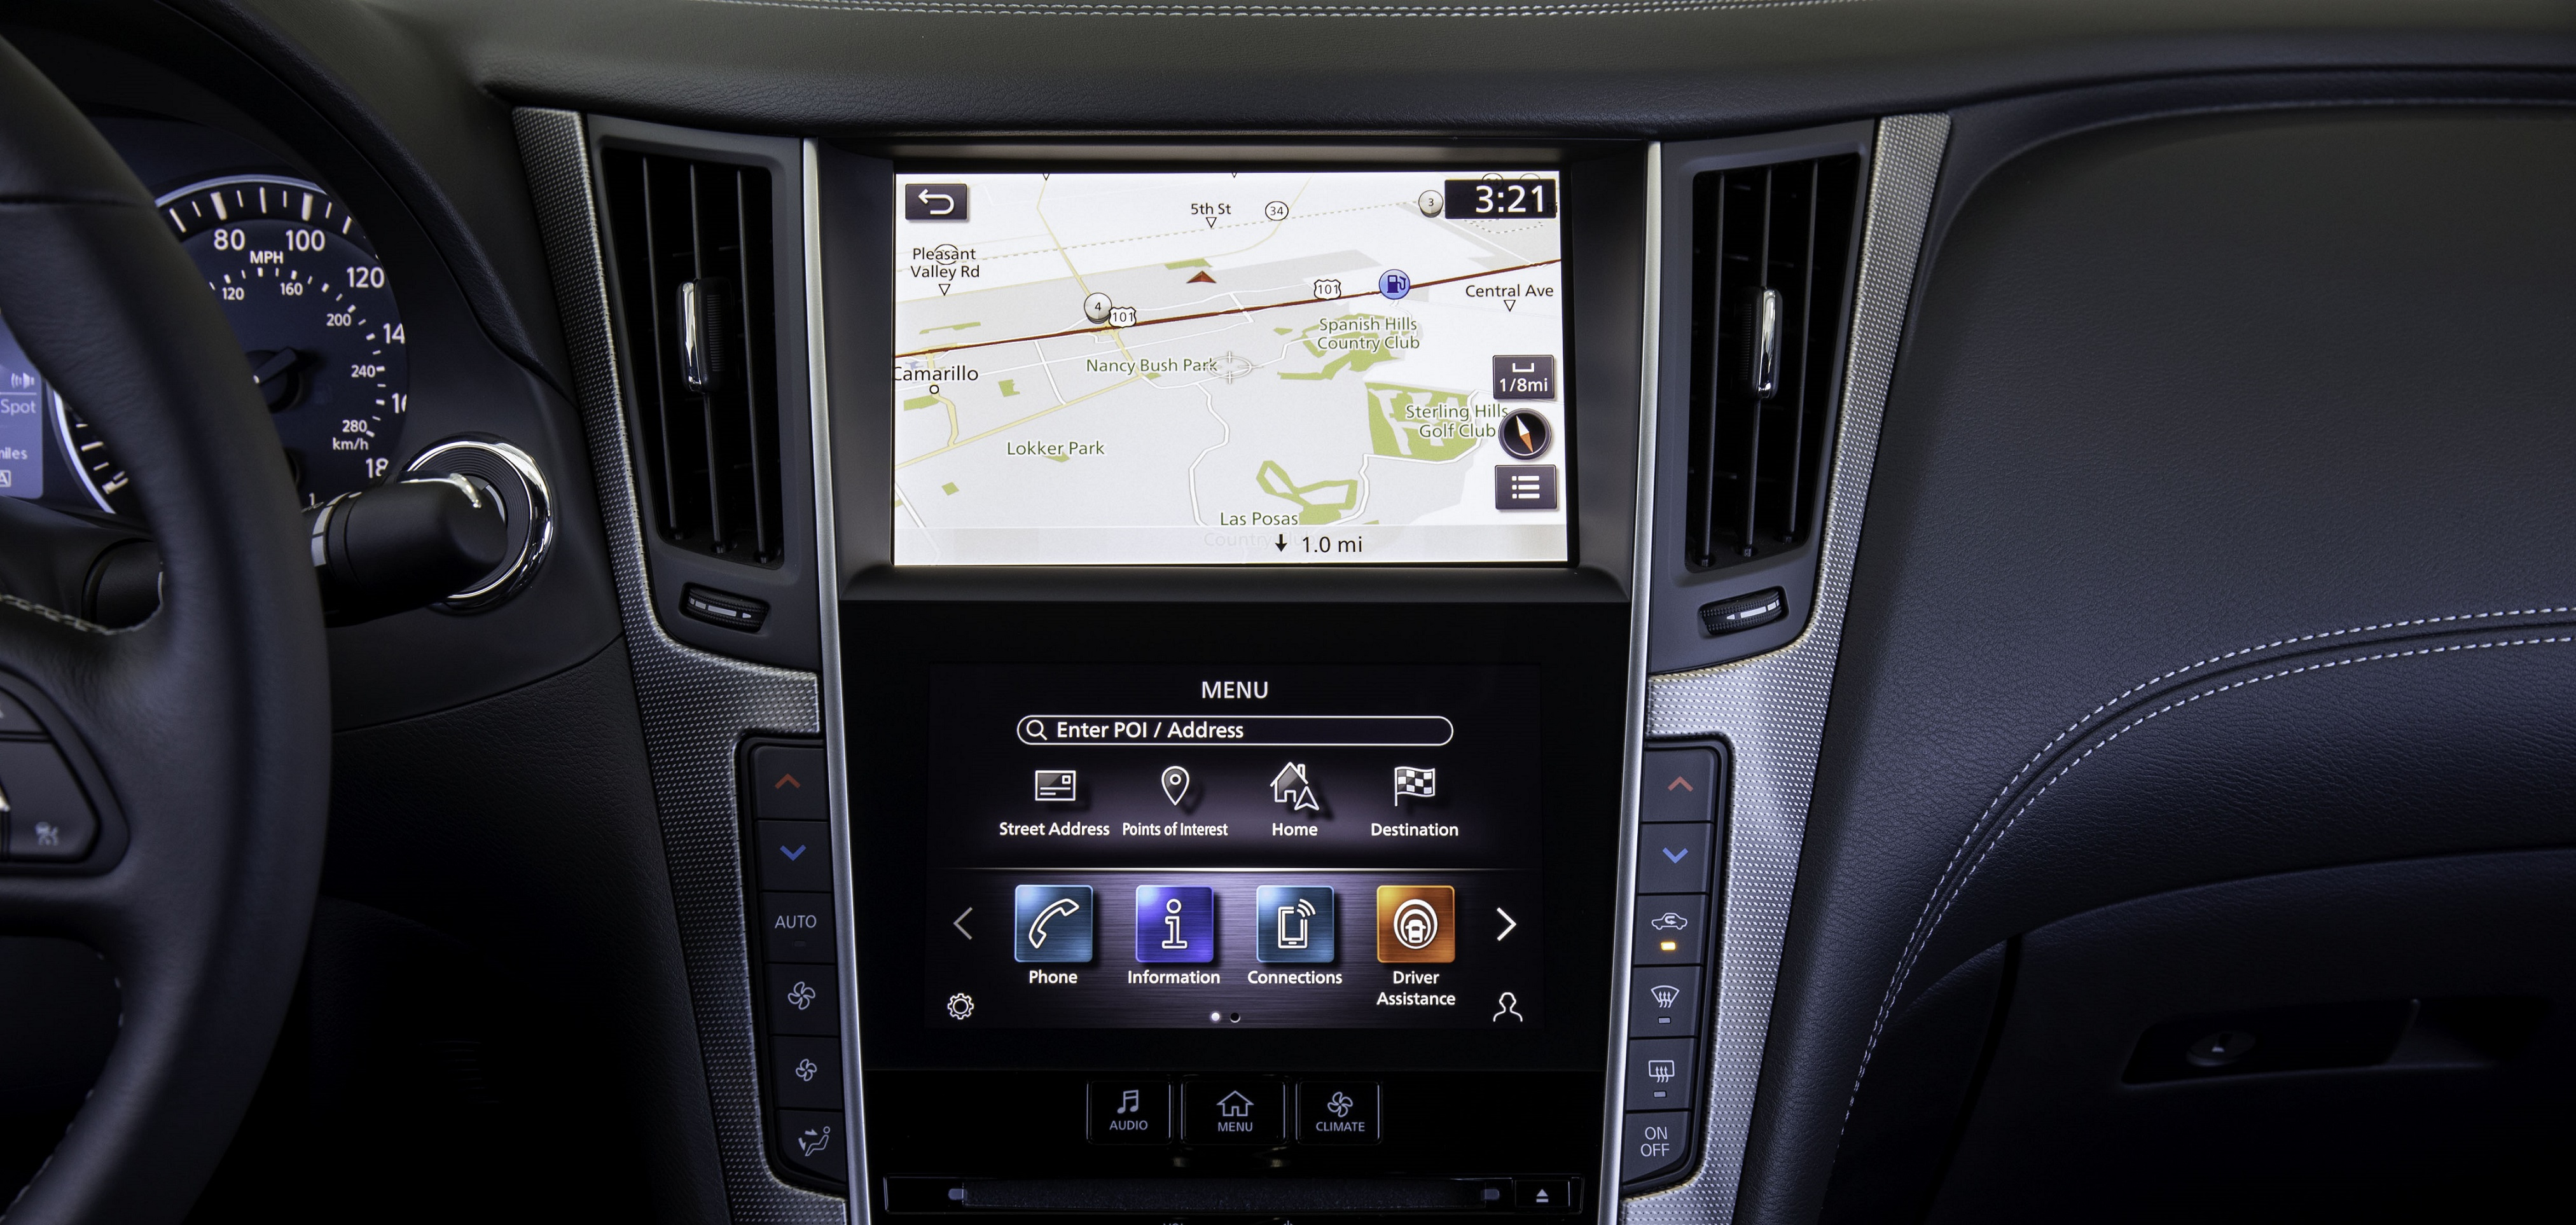 Infiniti Debuts New Infotainment System for Key 2020 Models